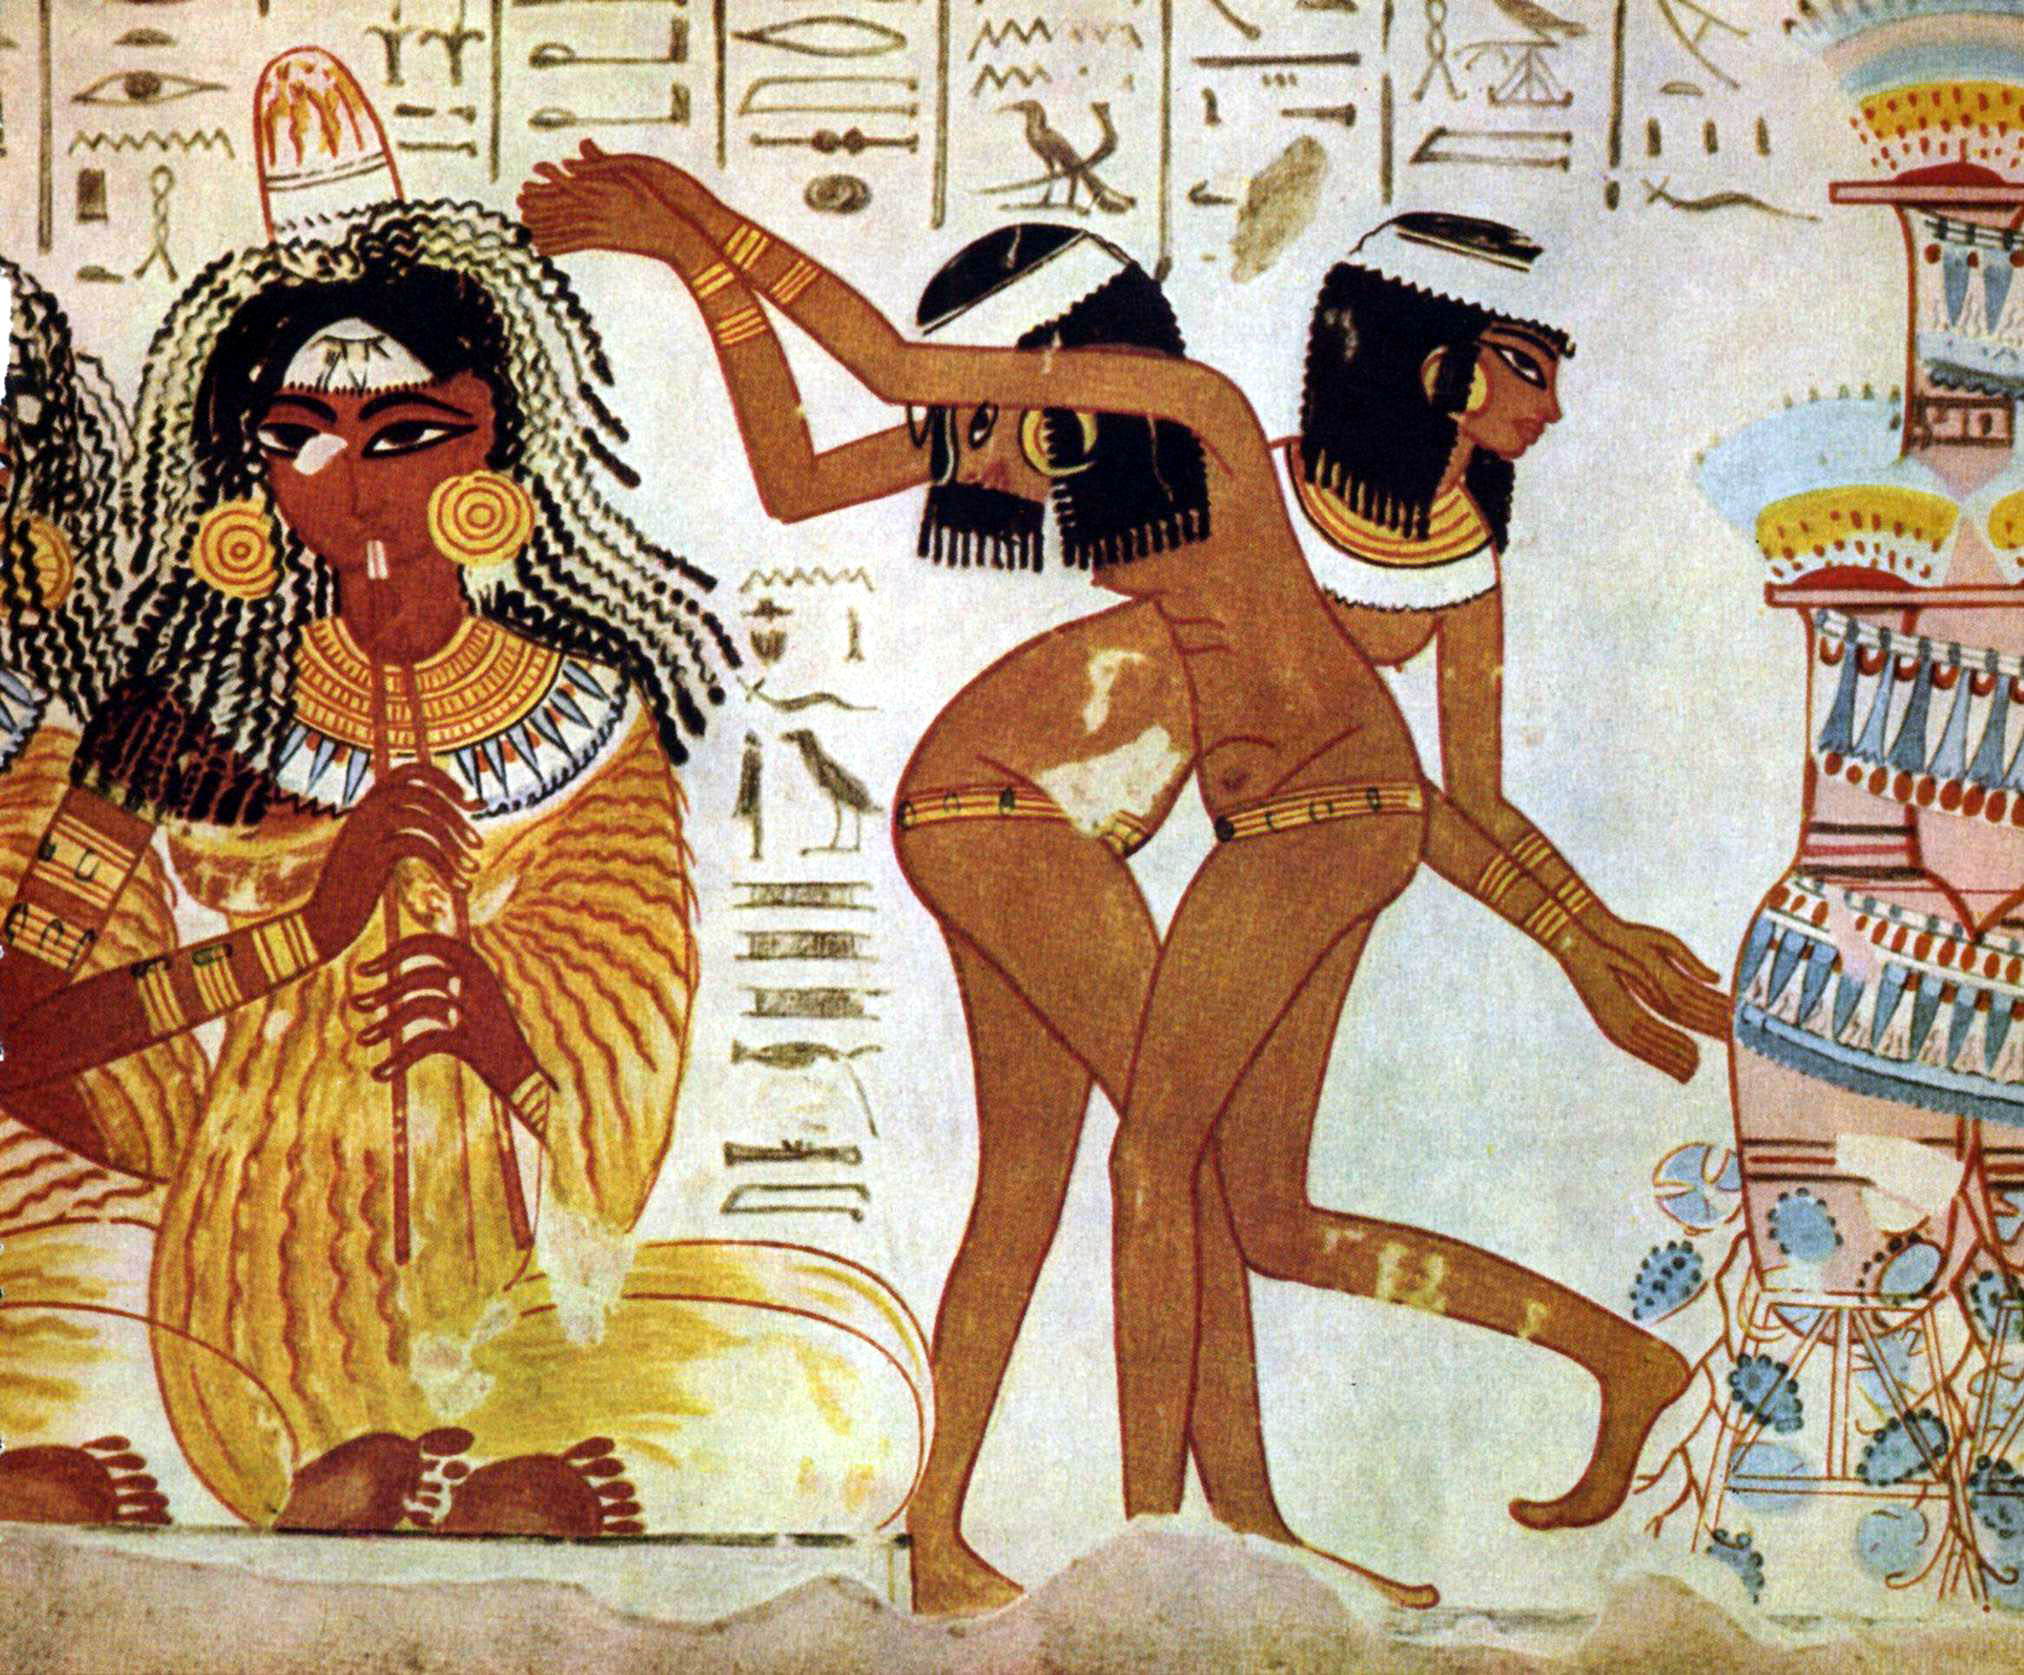 https://upload.wikimedia.org/wikipedia/commons/b/bf/Musicians_and_dancers_on_fresco_at_Tomb_of_Nebamun.jpg